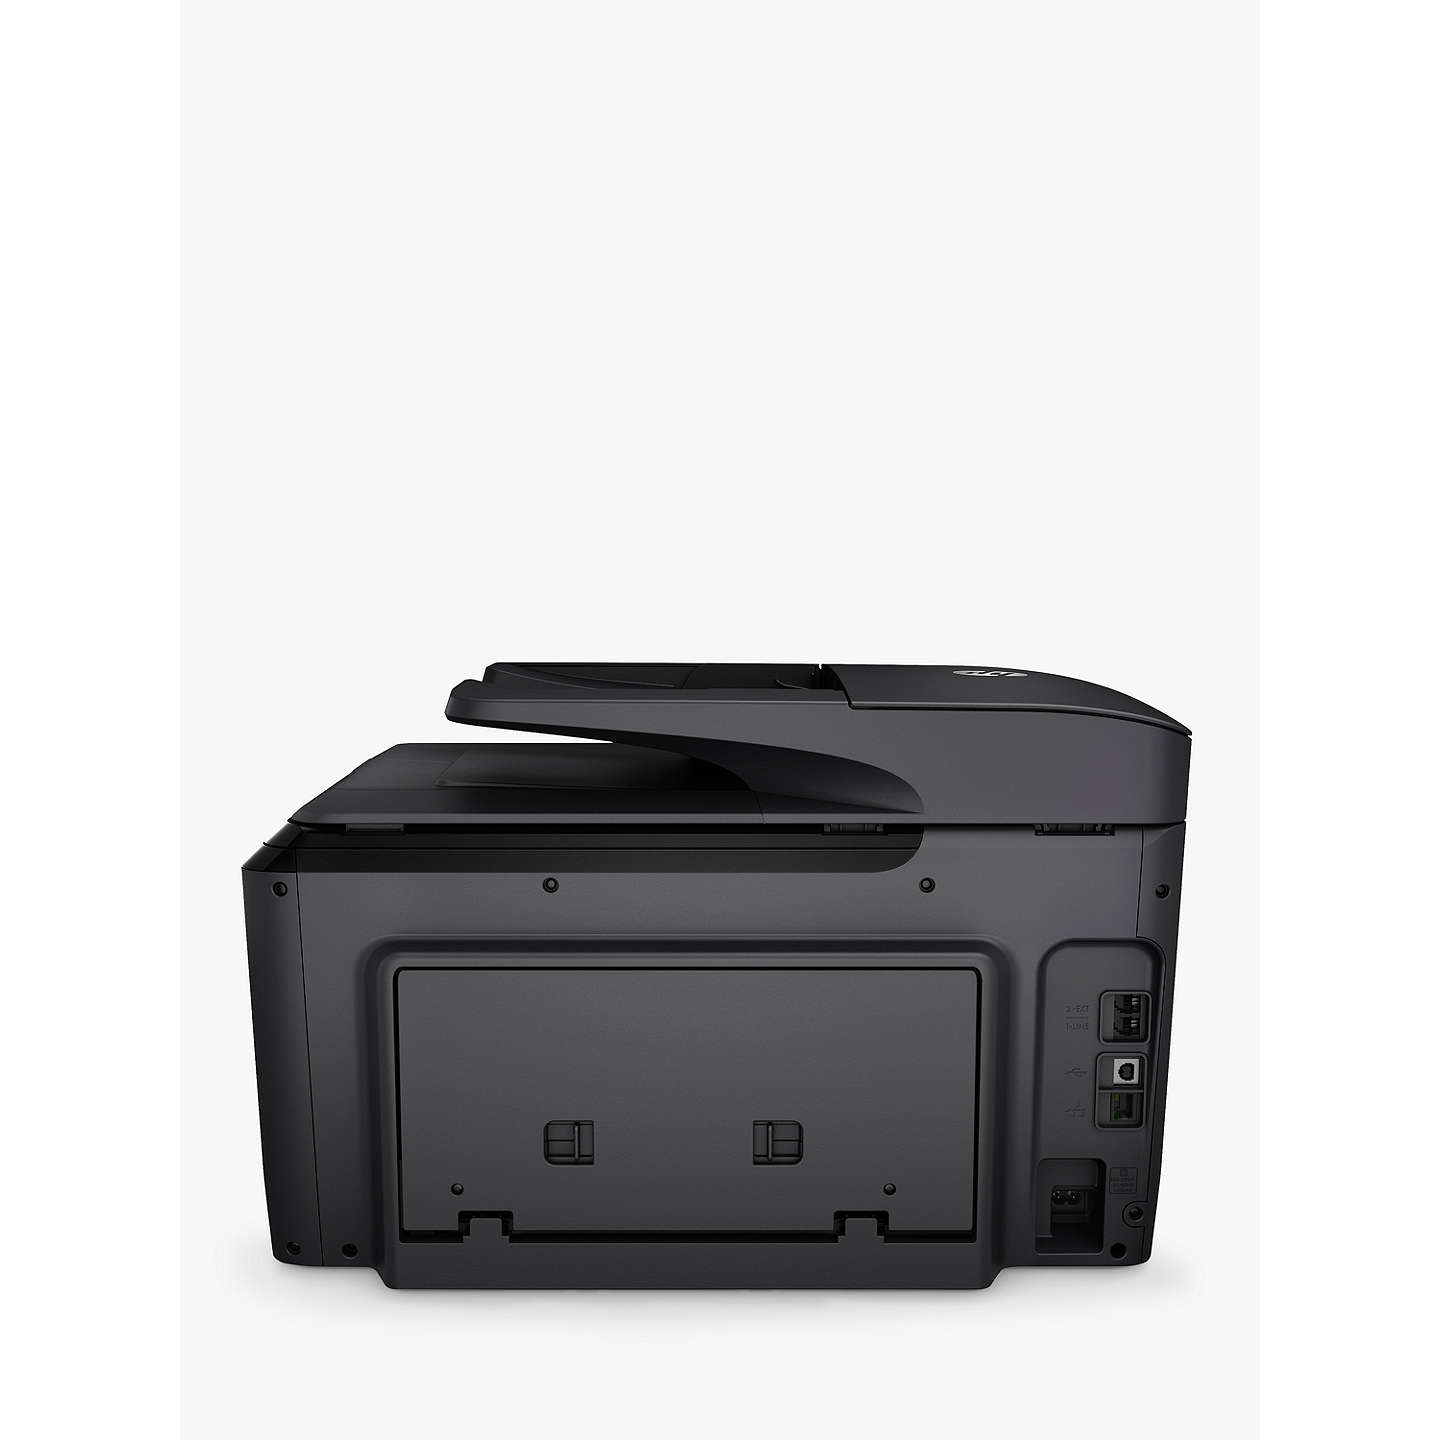 BuyHP OfficeJet Pro 8715 All-in-One Wireless Printer & Fax Machine with Touch Screen, HP Instant Ink Compatible with 3 Months Trial Online at johnlewis.com